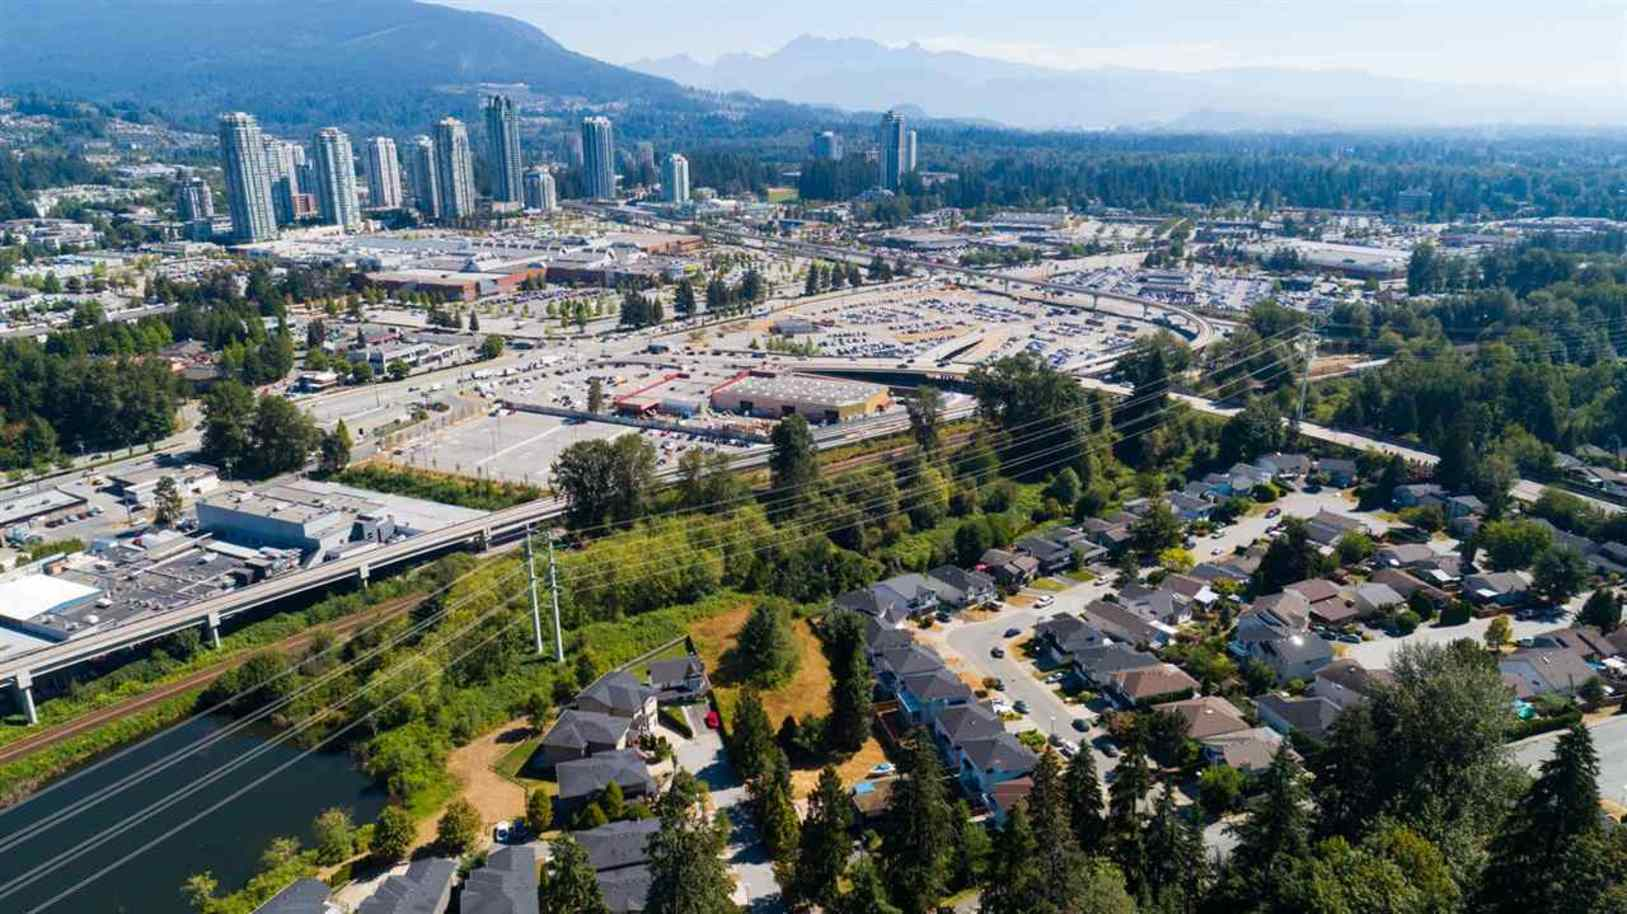 2761-dewdney-trunk-road-ranch-park-coquitlam-07 at 2761 Dewdney Trunk Road, Ranch Park, Coquitlam